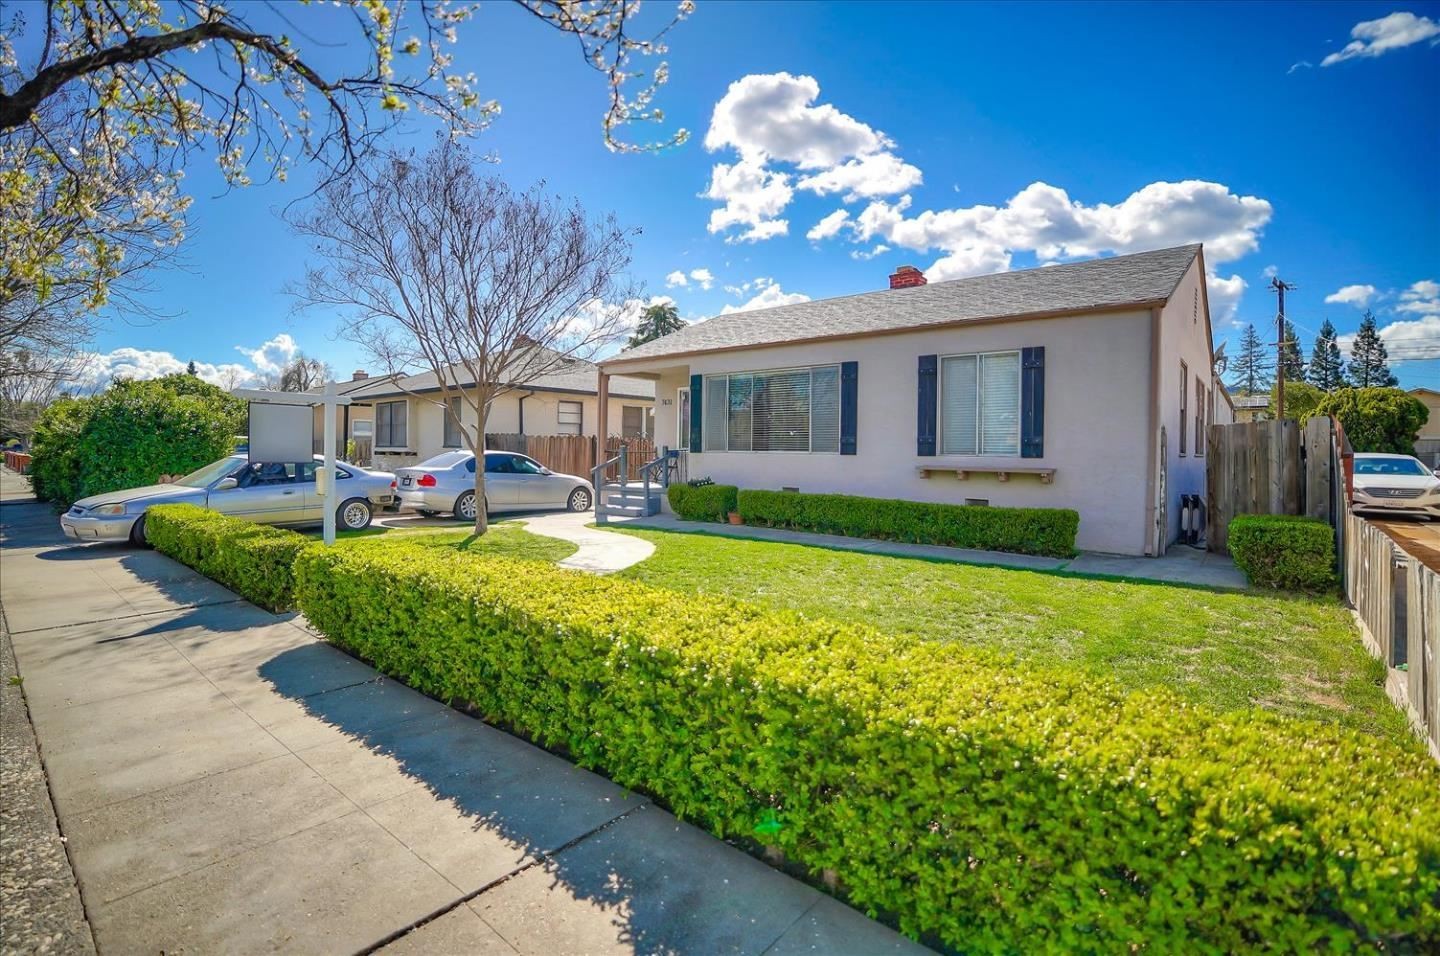 Photo for 7431 Dowdy ST, GILROY, CA 95020 (MLS # ML81824934)